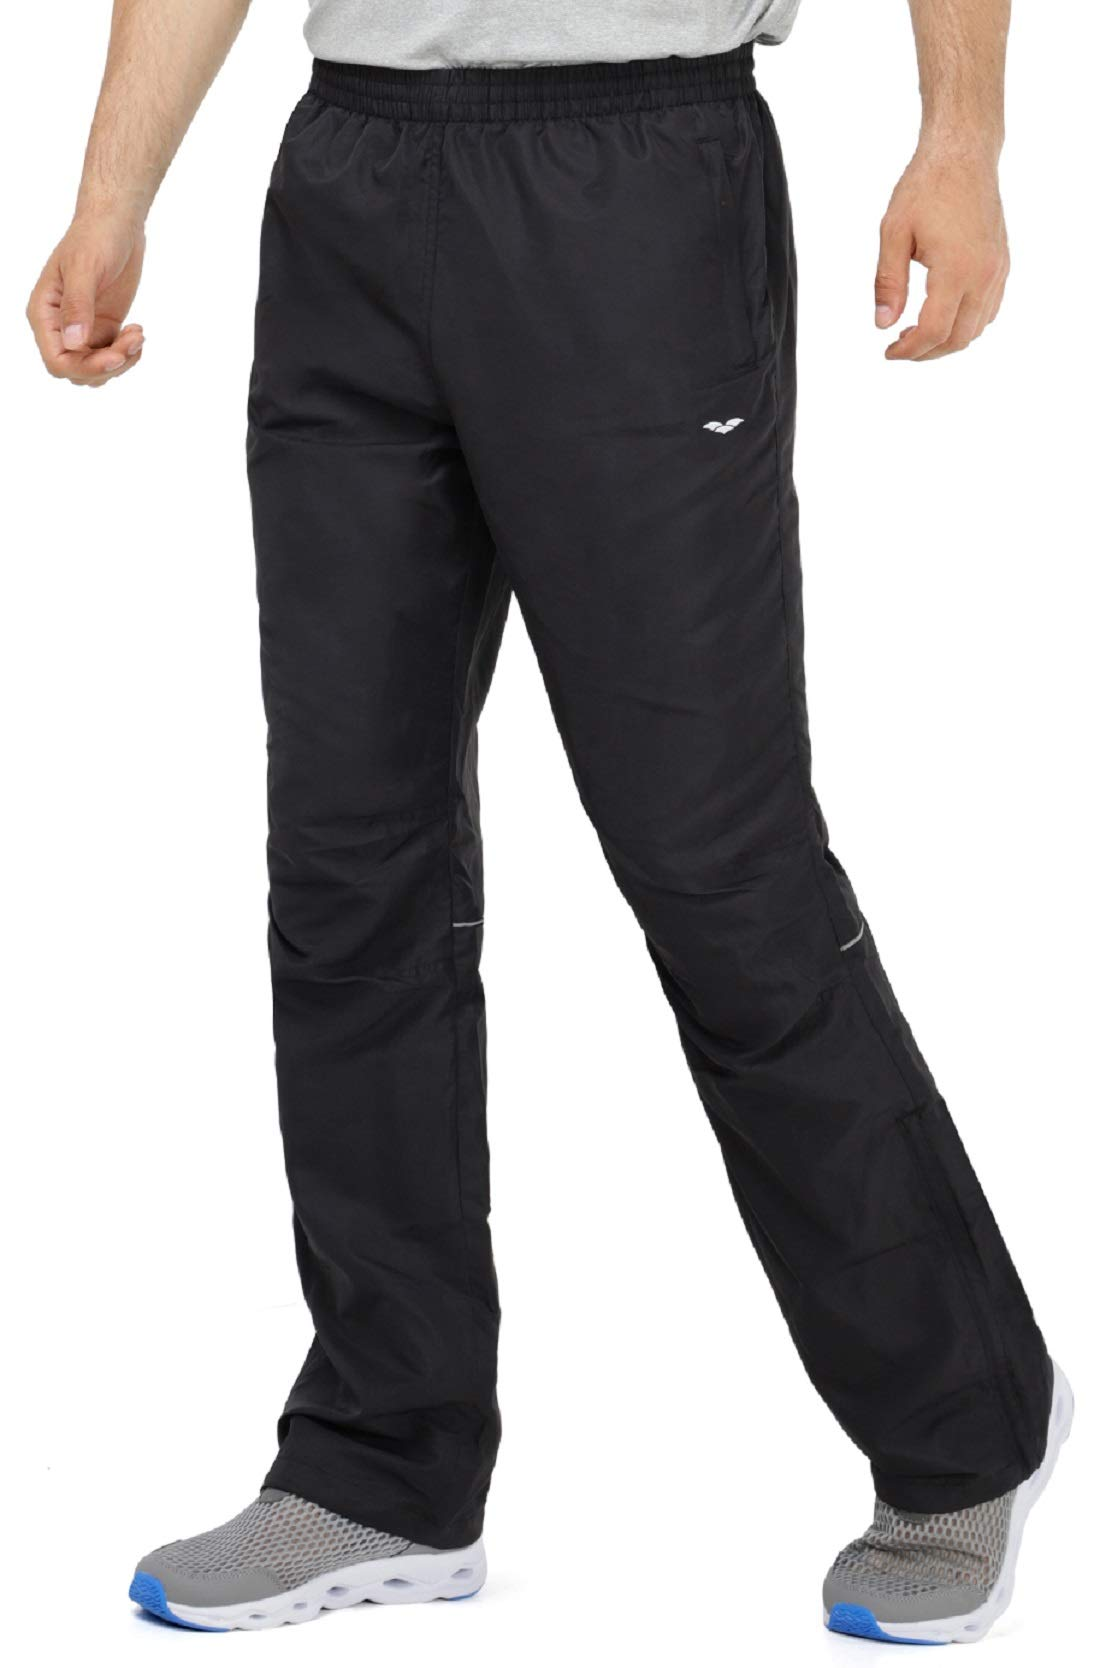 MIER Men's Sports Pants Warm Up Pants with Zipper Pockets for Workout, Gym, Running, Training (Updated Black - Sports Pants, Small)